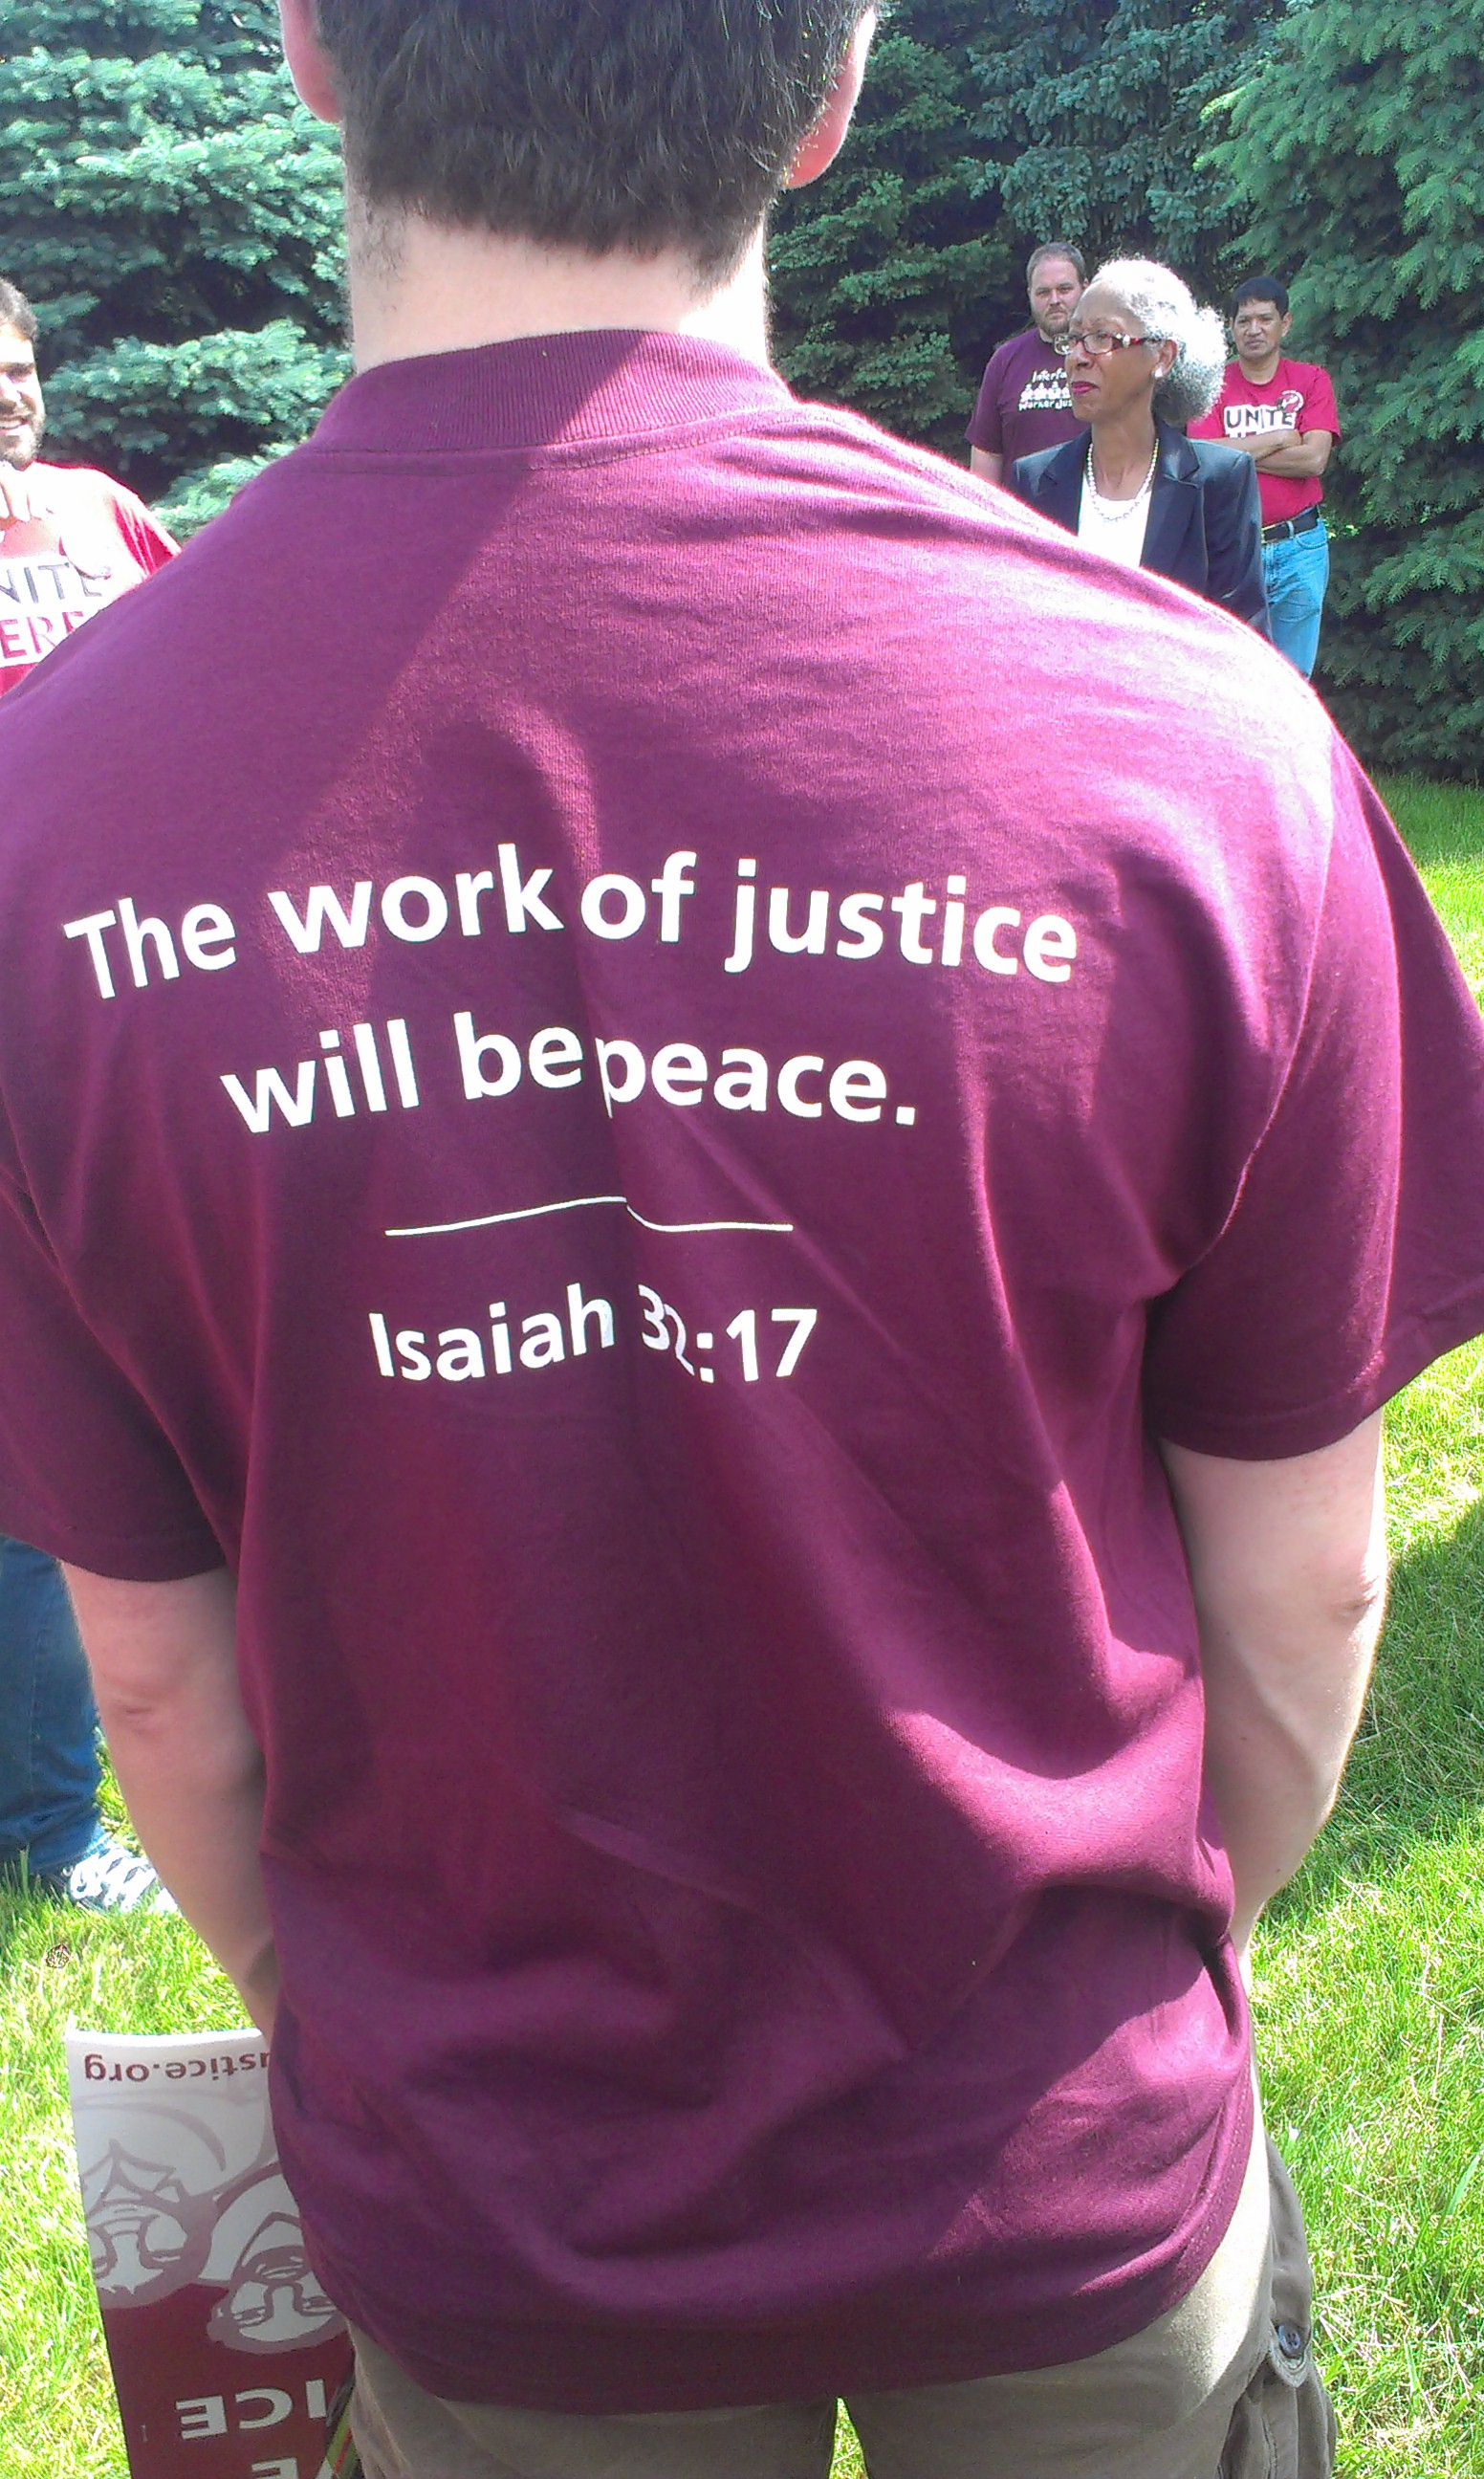 IWJ Shirt, Quote from Isaiah